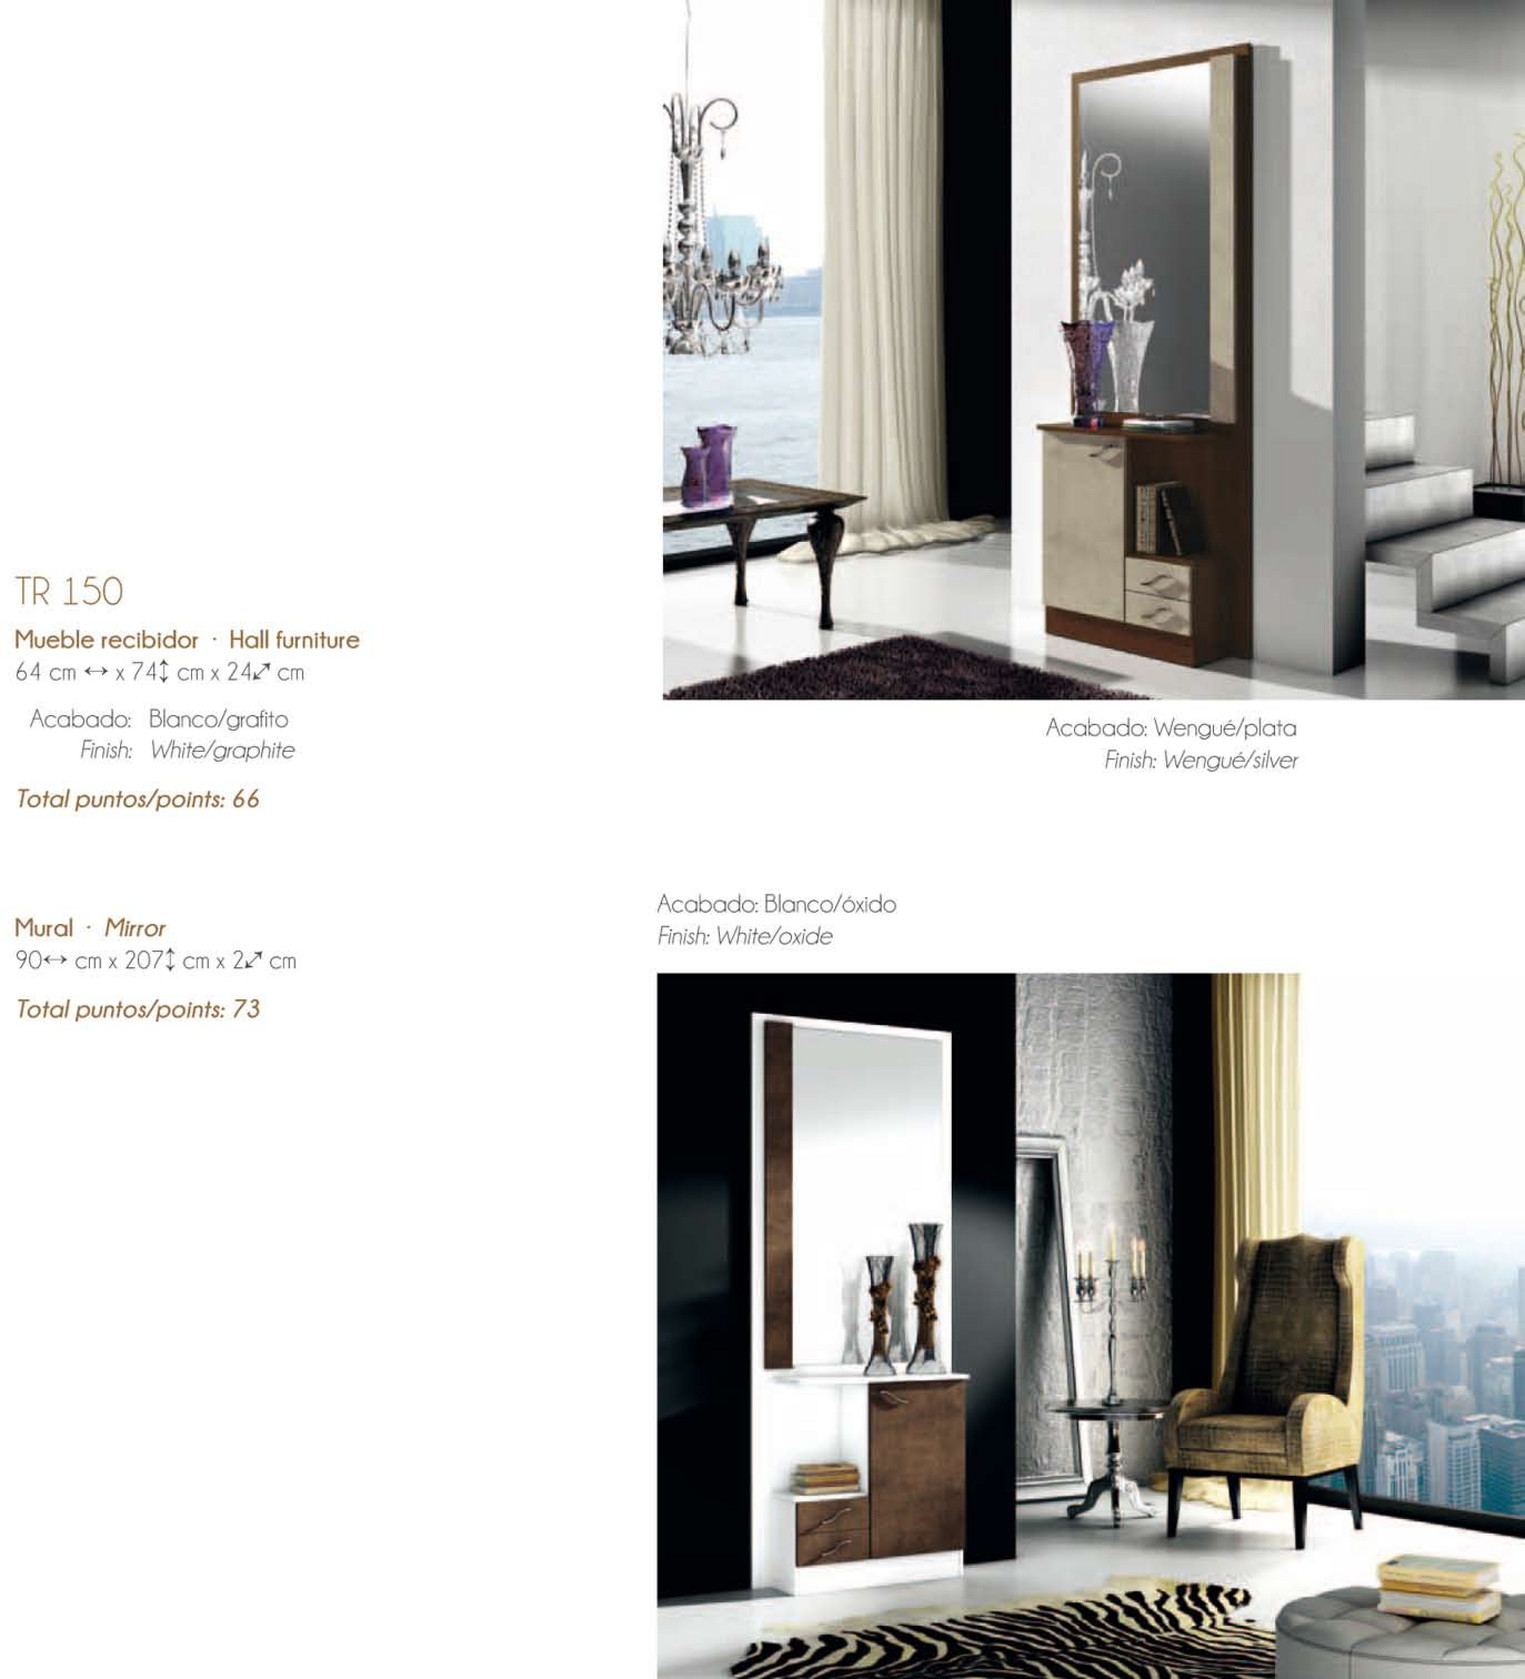 My publications muebles san francisco madrid muebles for Muebles usados madrid